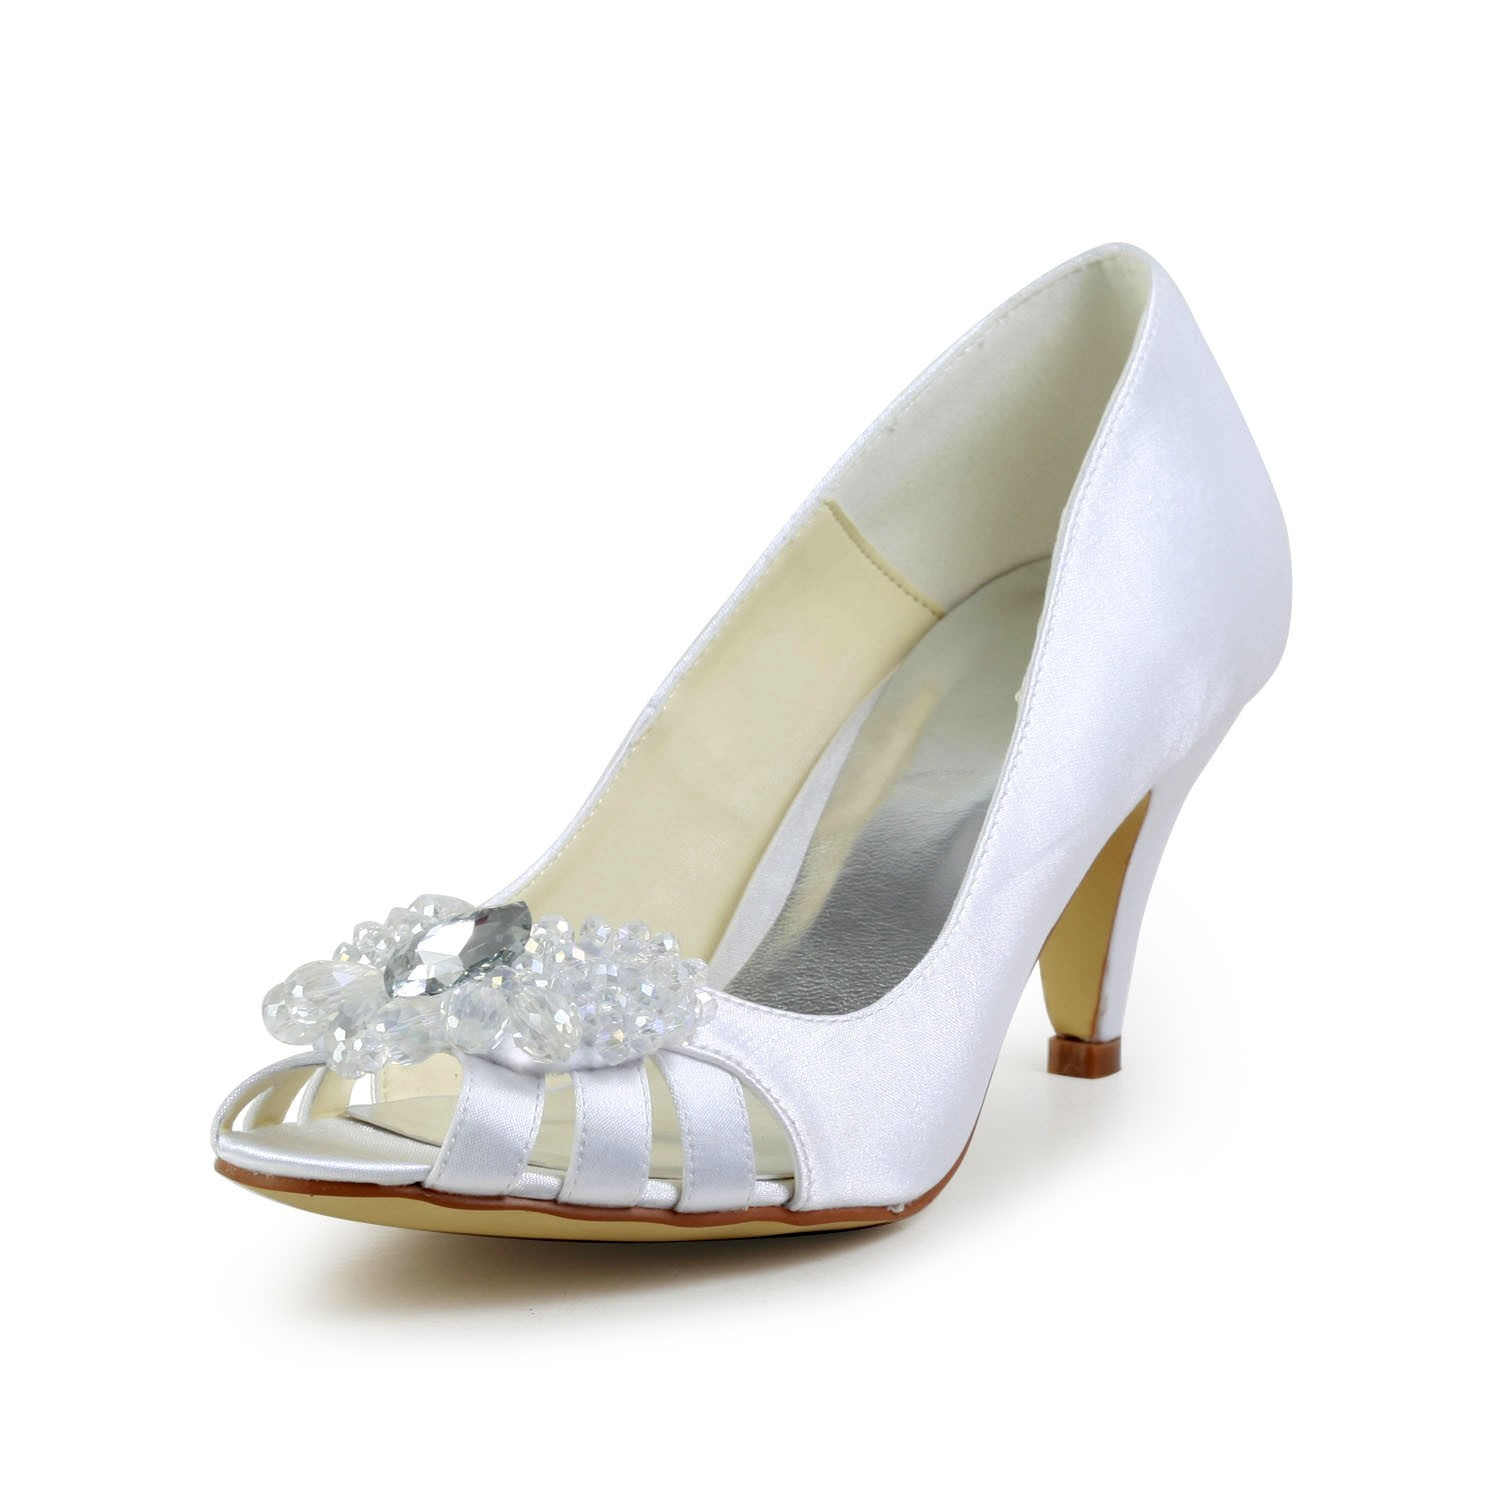 Chicregina Womens Satin Cone Heel Peep Toe Pumps Sandals with Rhinestone Hollow Out